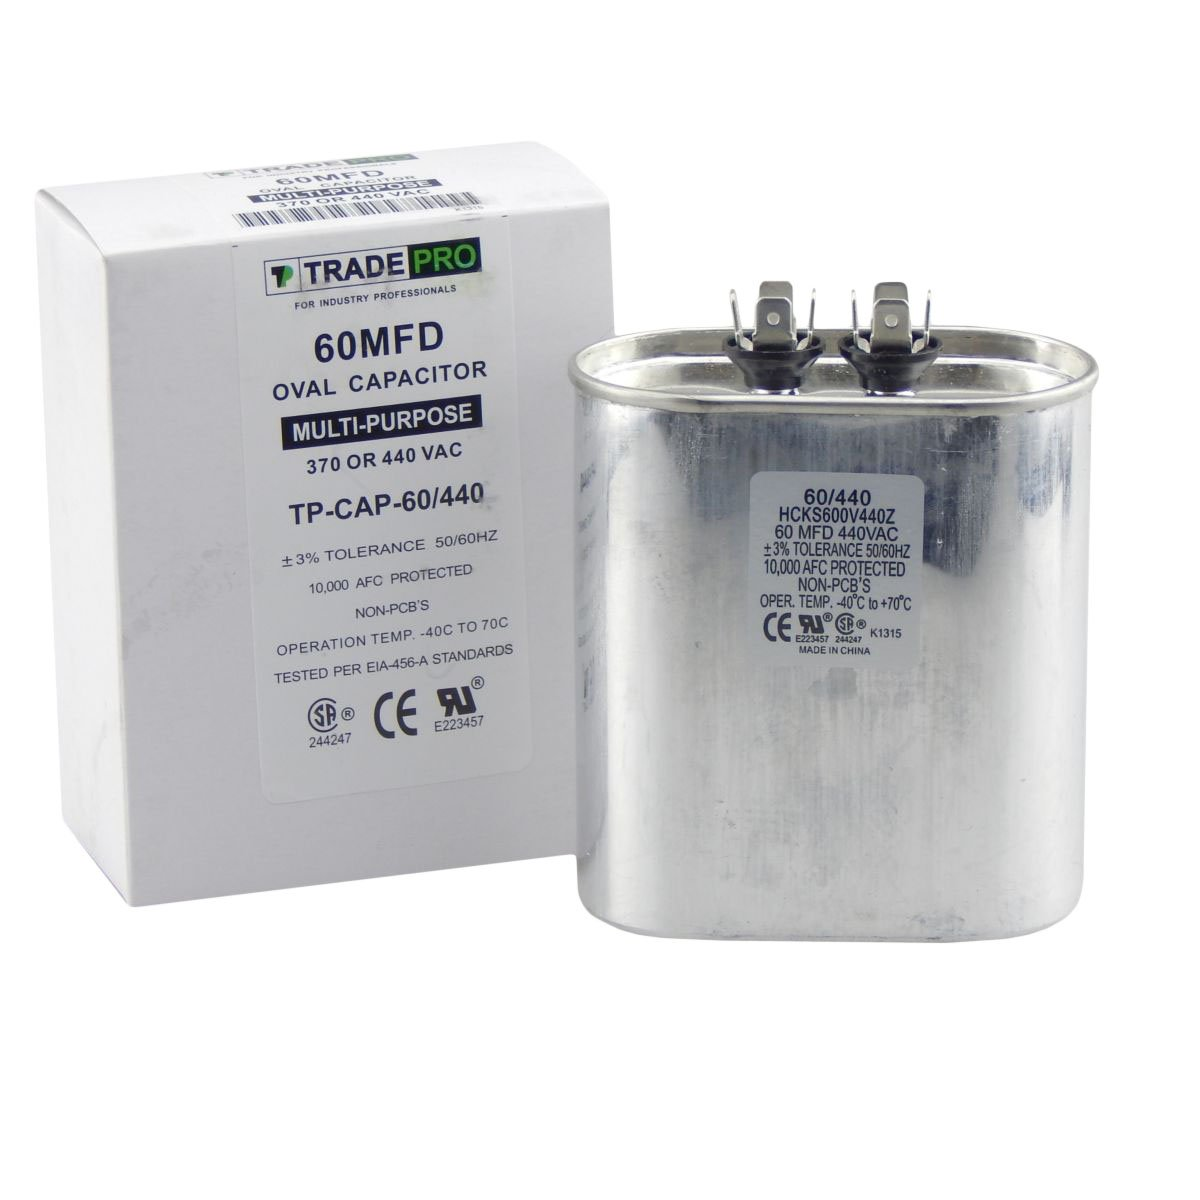 60 mfd Capacitor, Industrial Grade Replacement for Central Air-Conditioners, Heat Pumps, Condenser Fan Motors, and Compressors. Oval Multi-Purpose 370/440 Volt - by Trade Pro TradePro